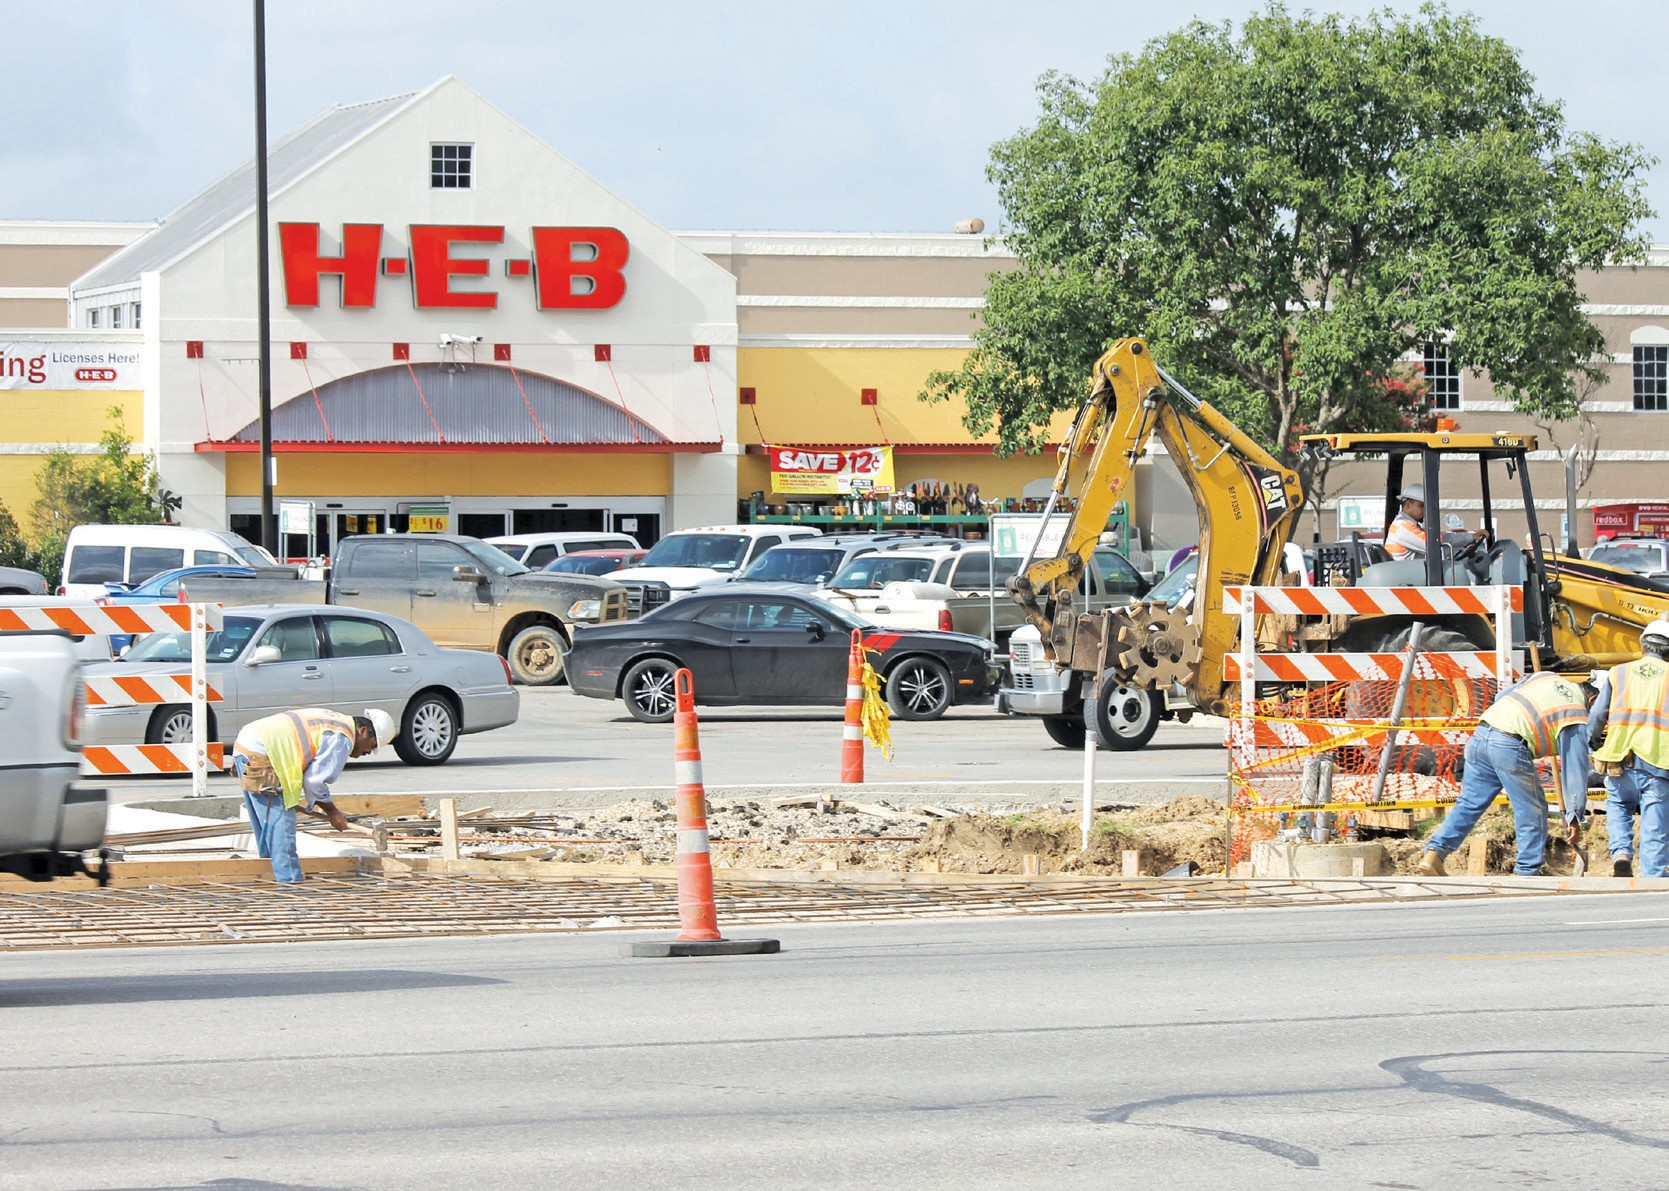 Recent foundation work on new entrance to Pleasanton H.E.B. Soon, a stop light will be erected at the entrance that is aligned with Reed Street.